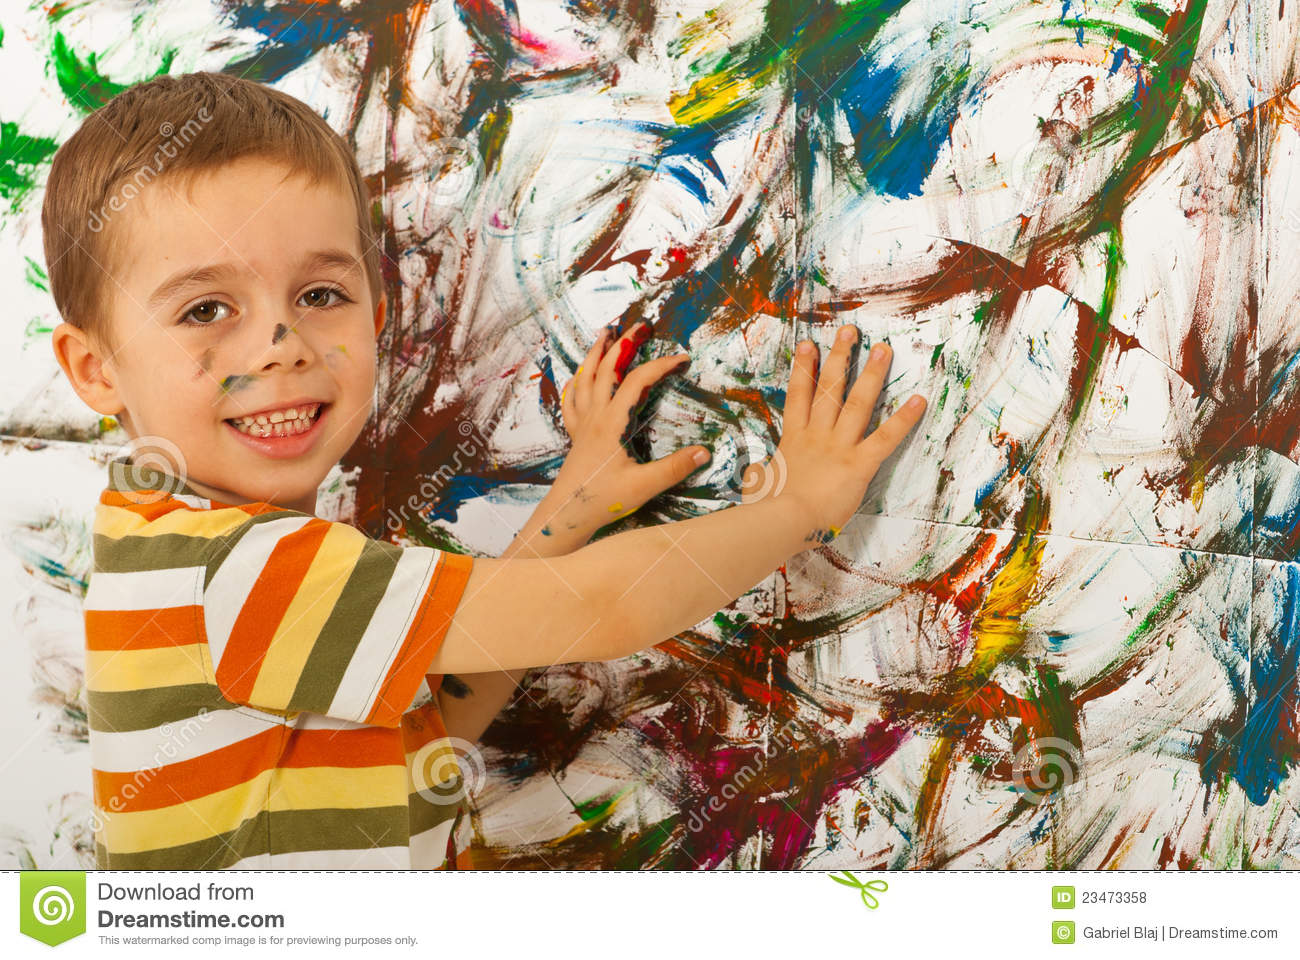 Child Boy Painting Wall With Hands Royalty Free Stock